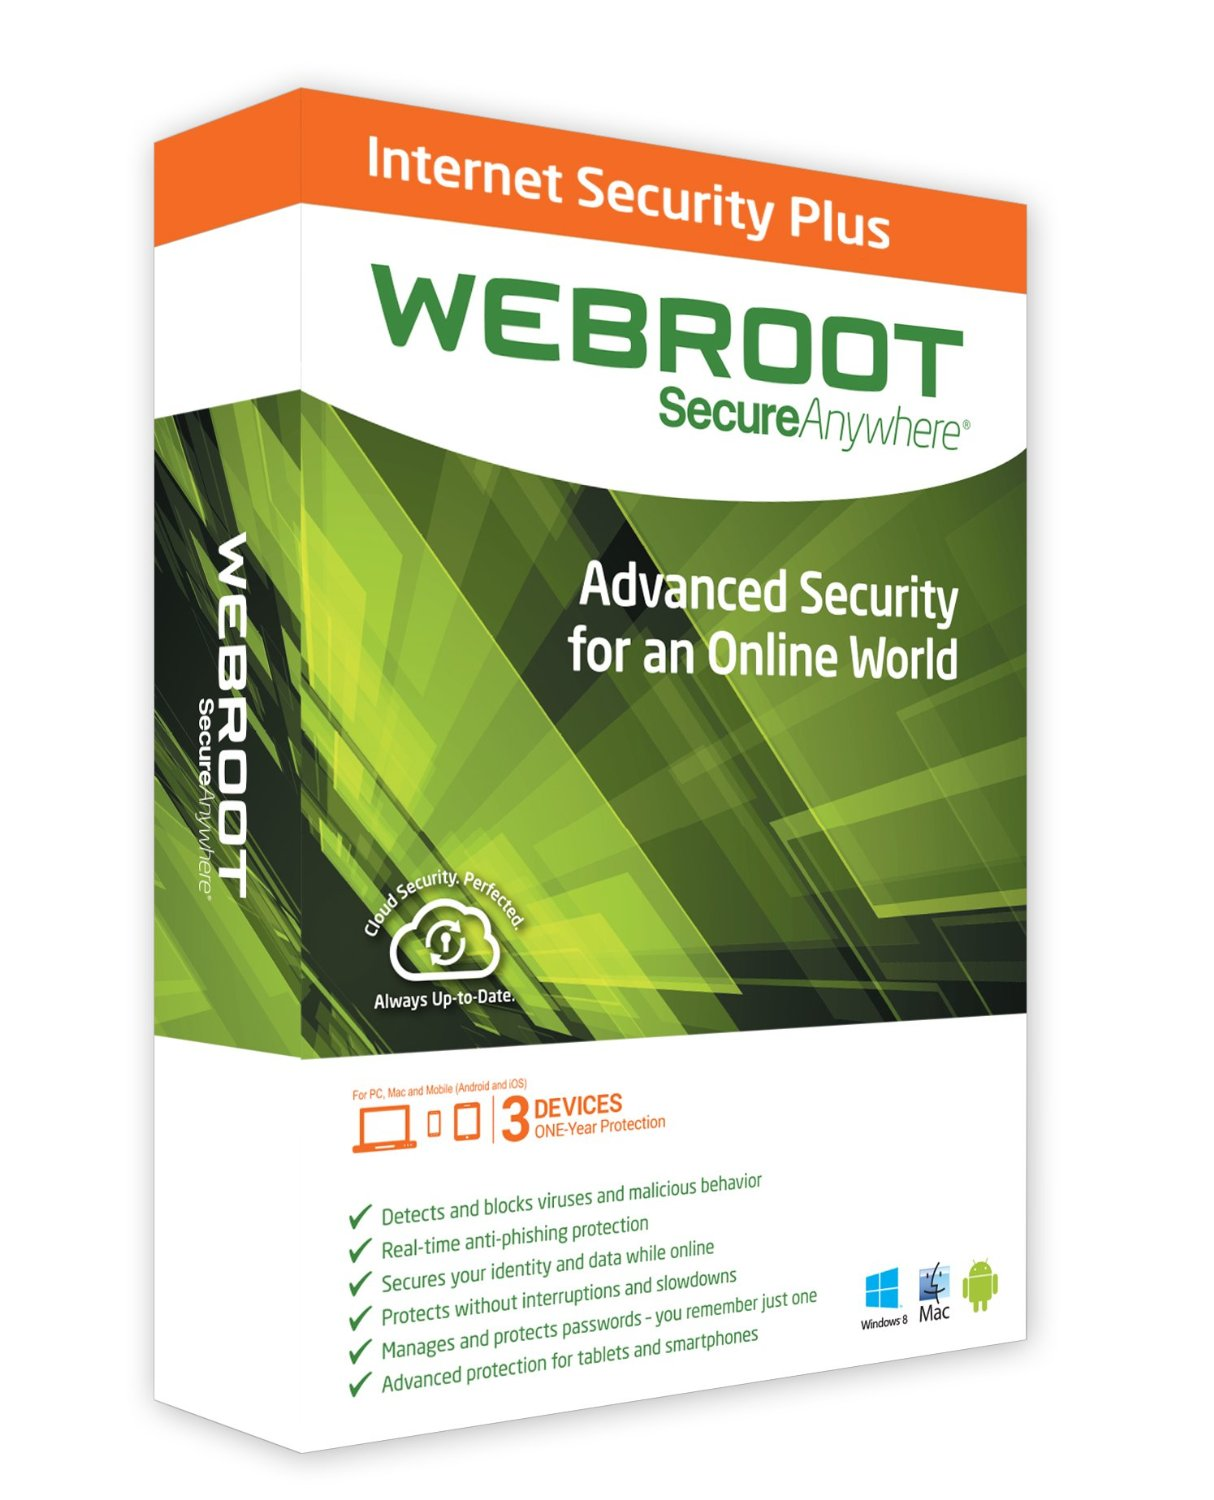 Webroot SecureAnywhere internet security plus 2014